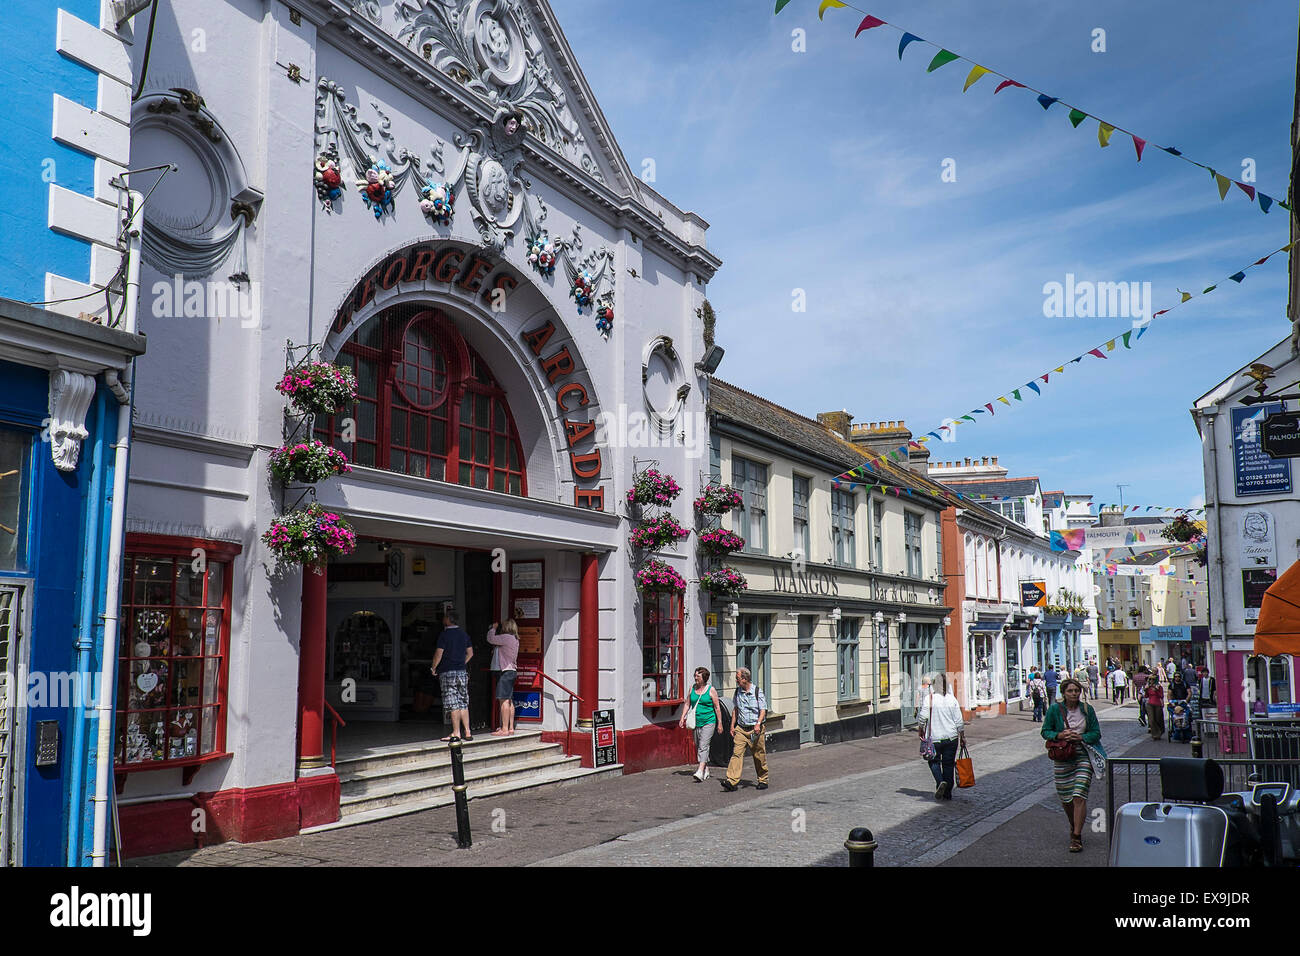 Georges Arcade in Church Street in Falmouth Town Centre, Cornwall. - Stock Image